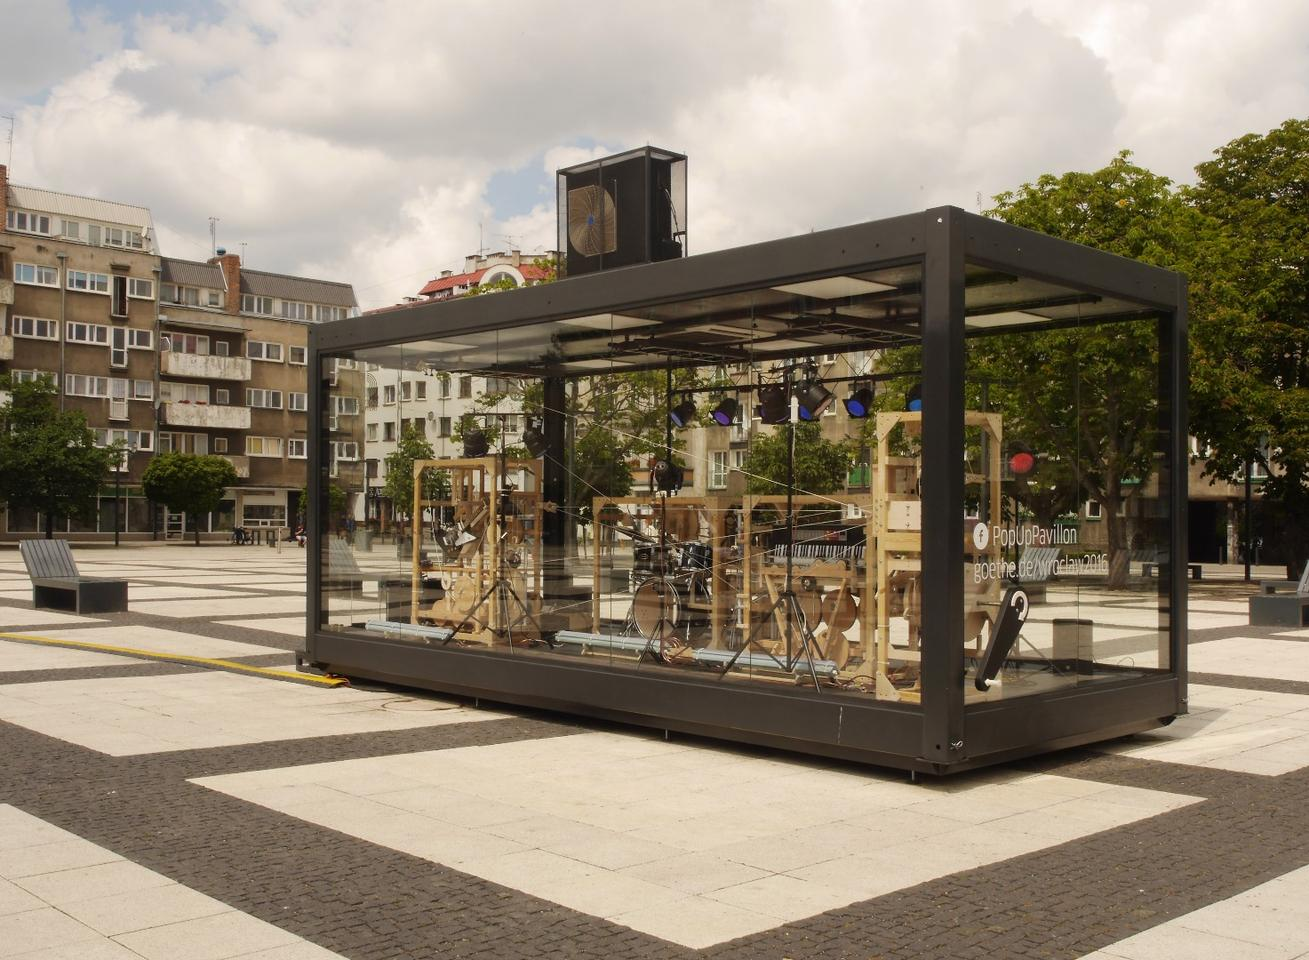 The Music Construction Machine was installed in the Goethe-Institut Pop Up Pavillion in Wroclaw, Poland